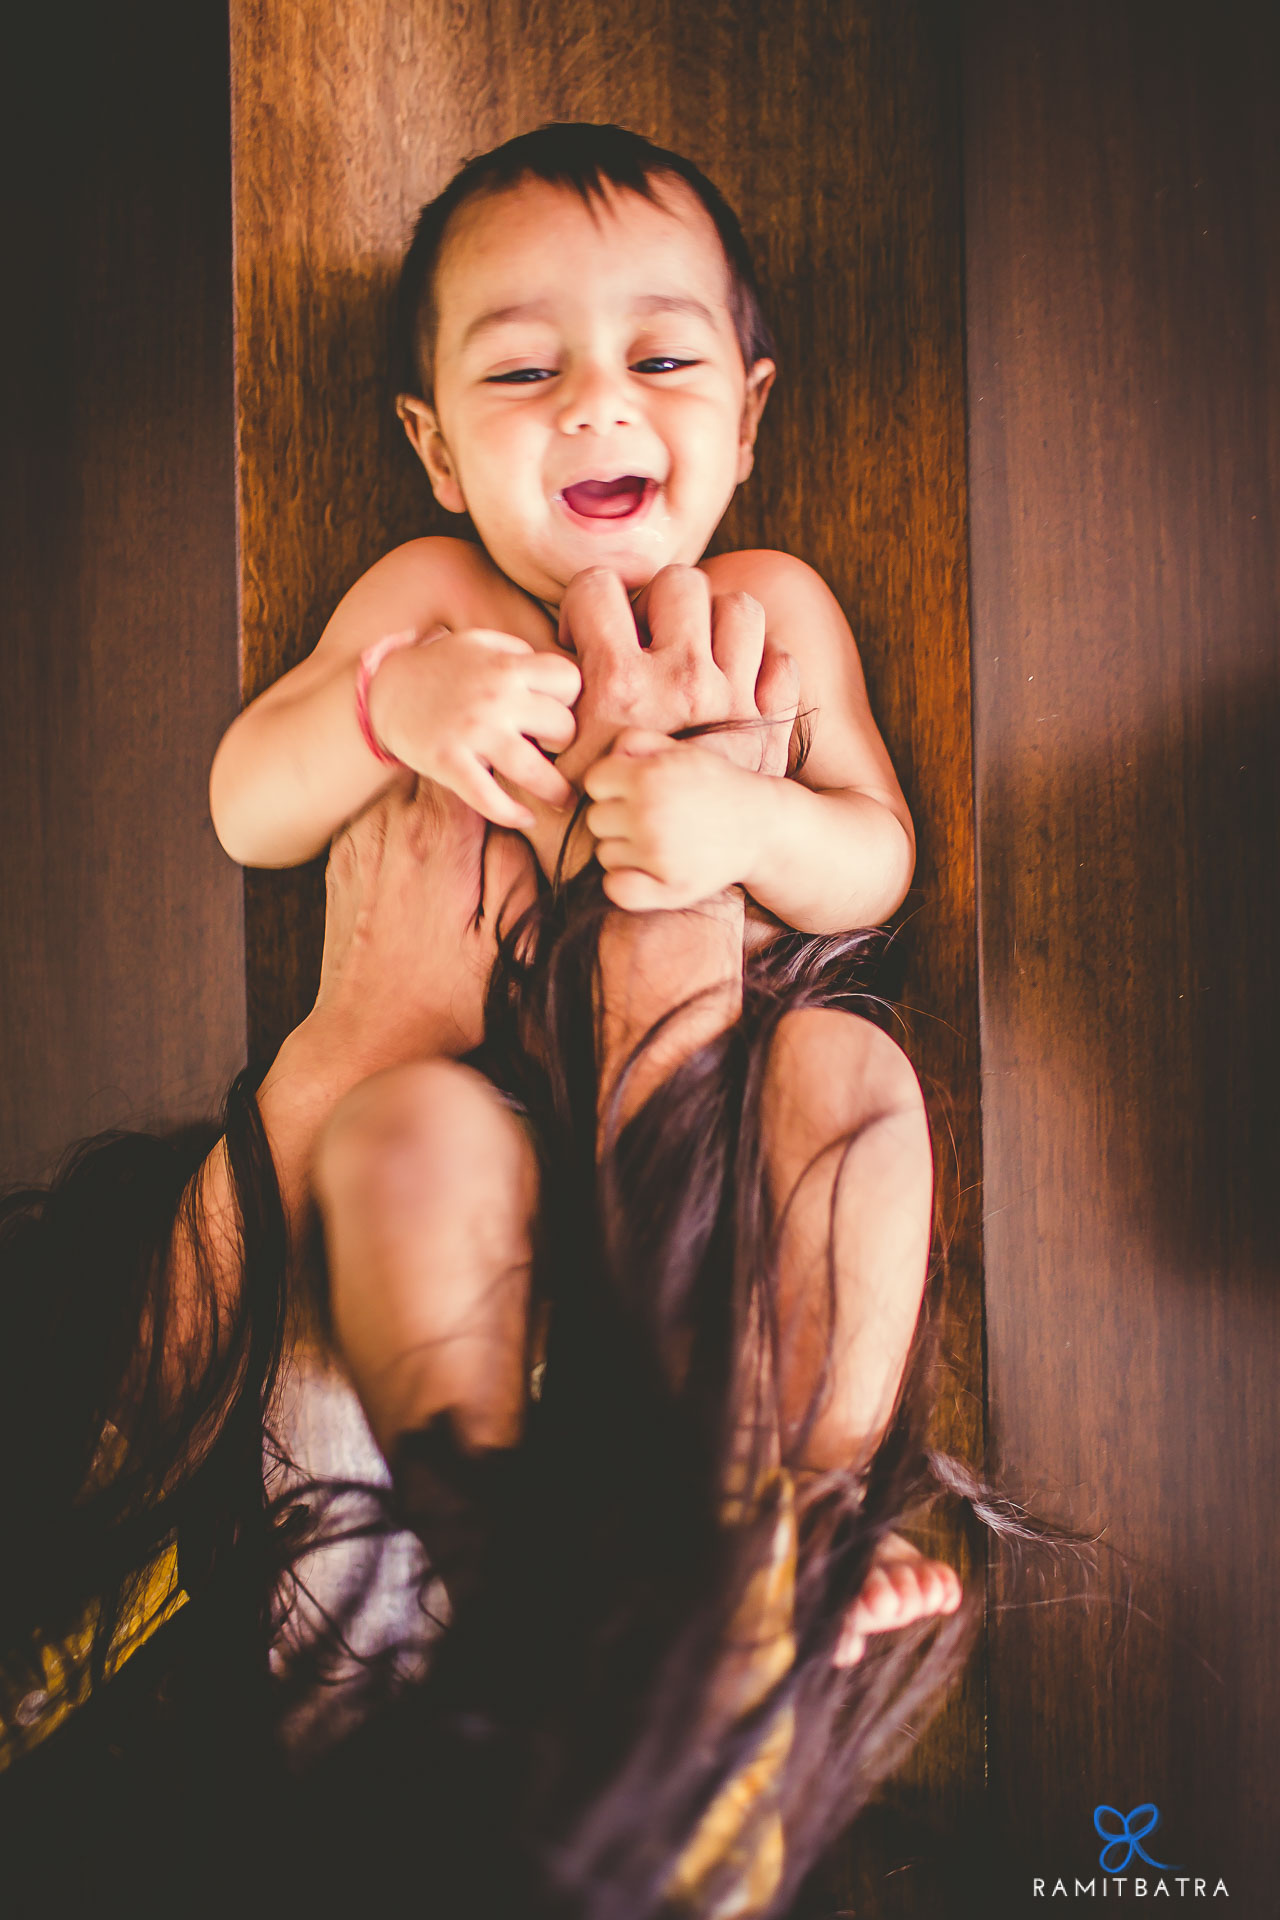 Kiddie-Infant-Photography-RamitBatra_26